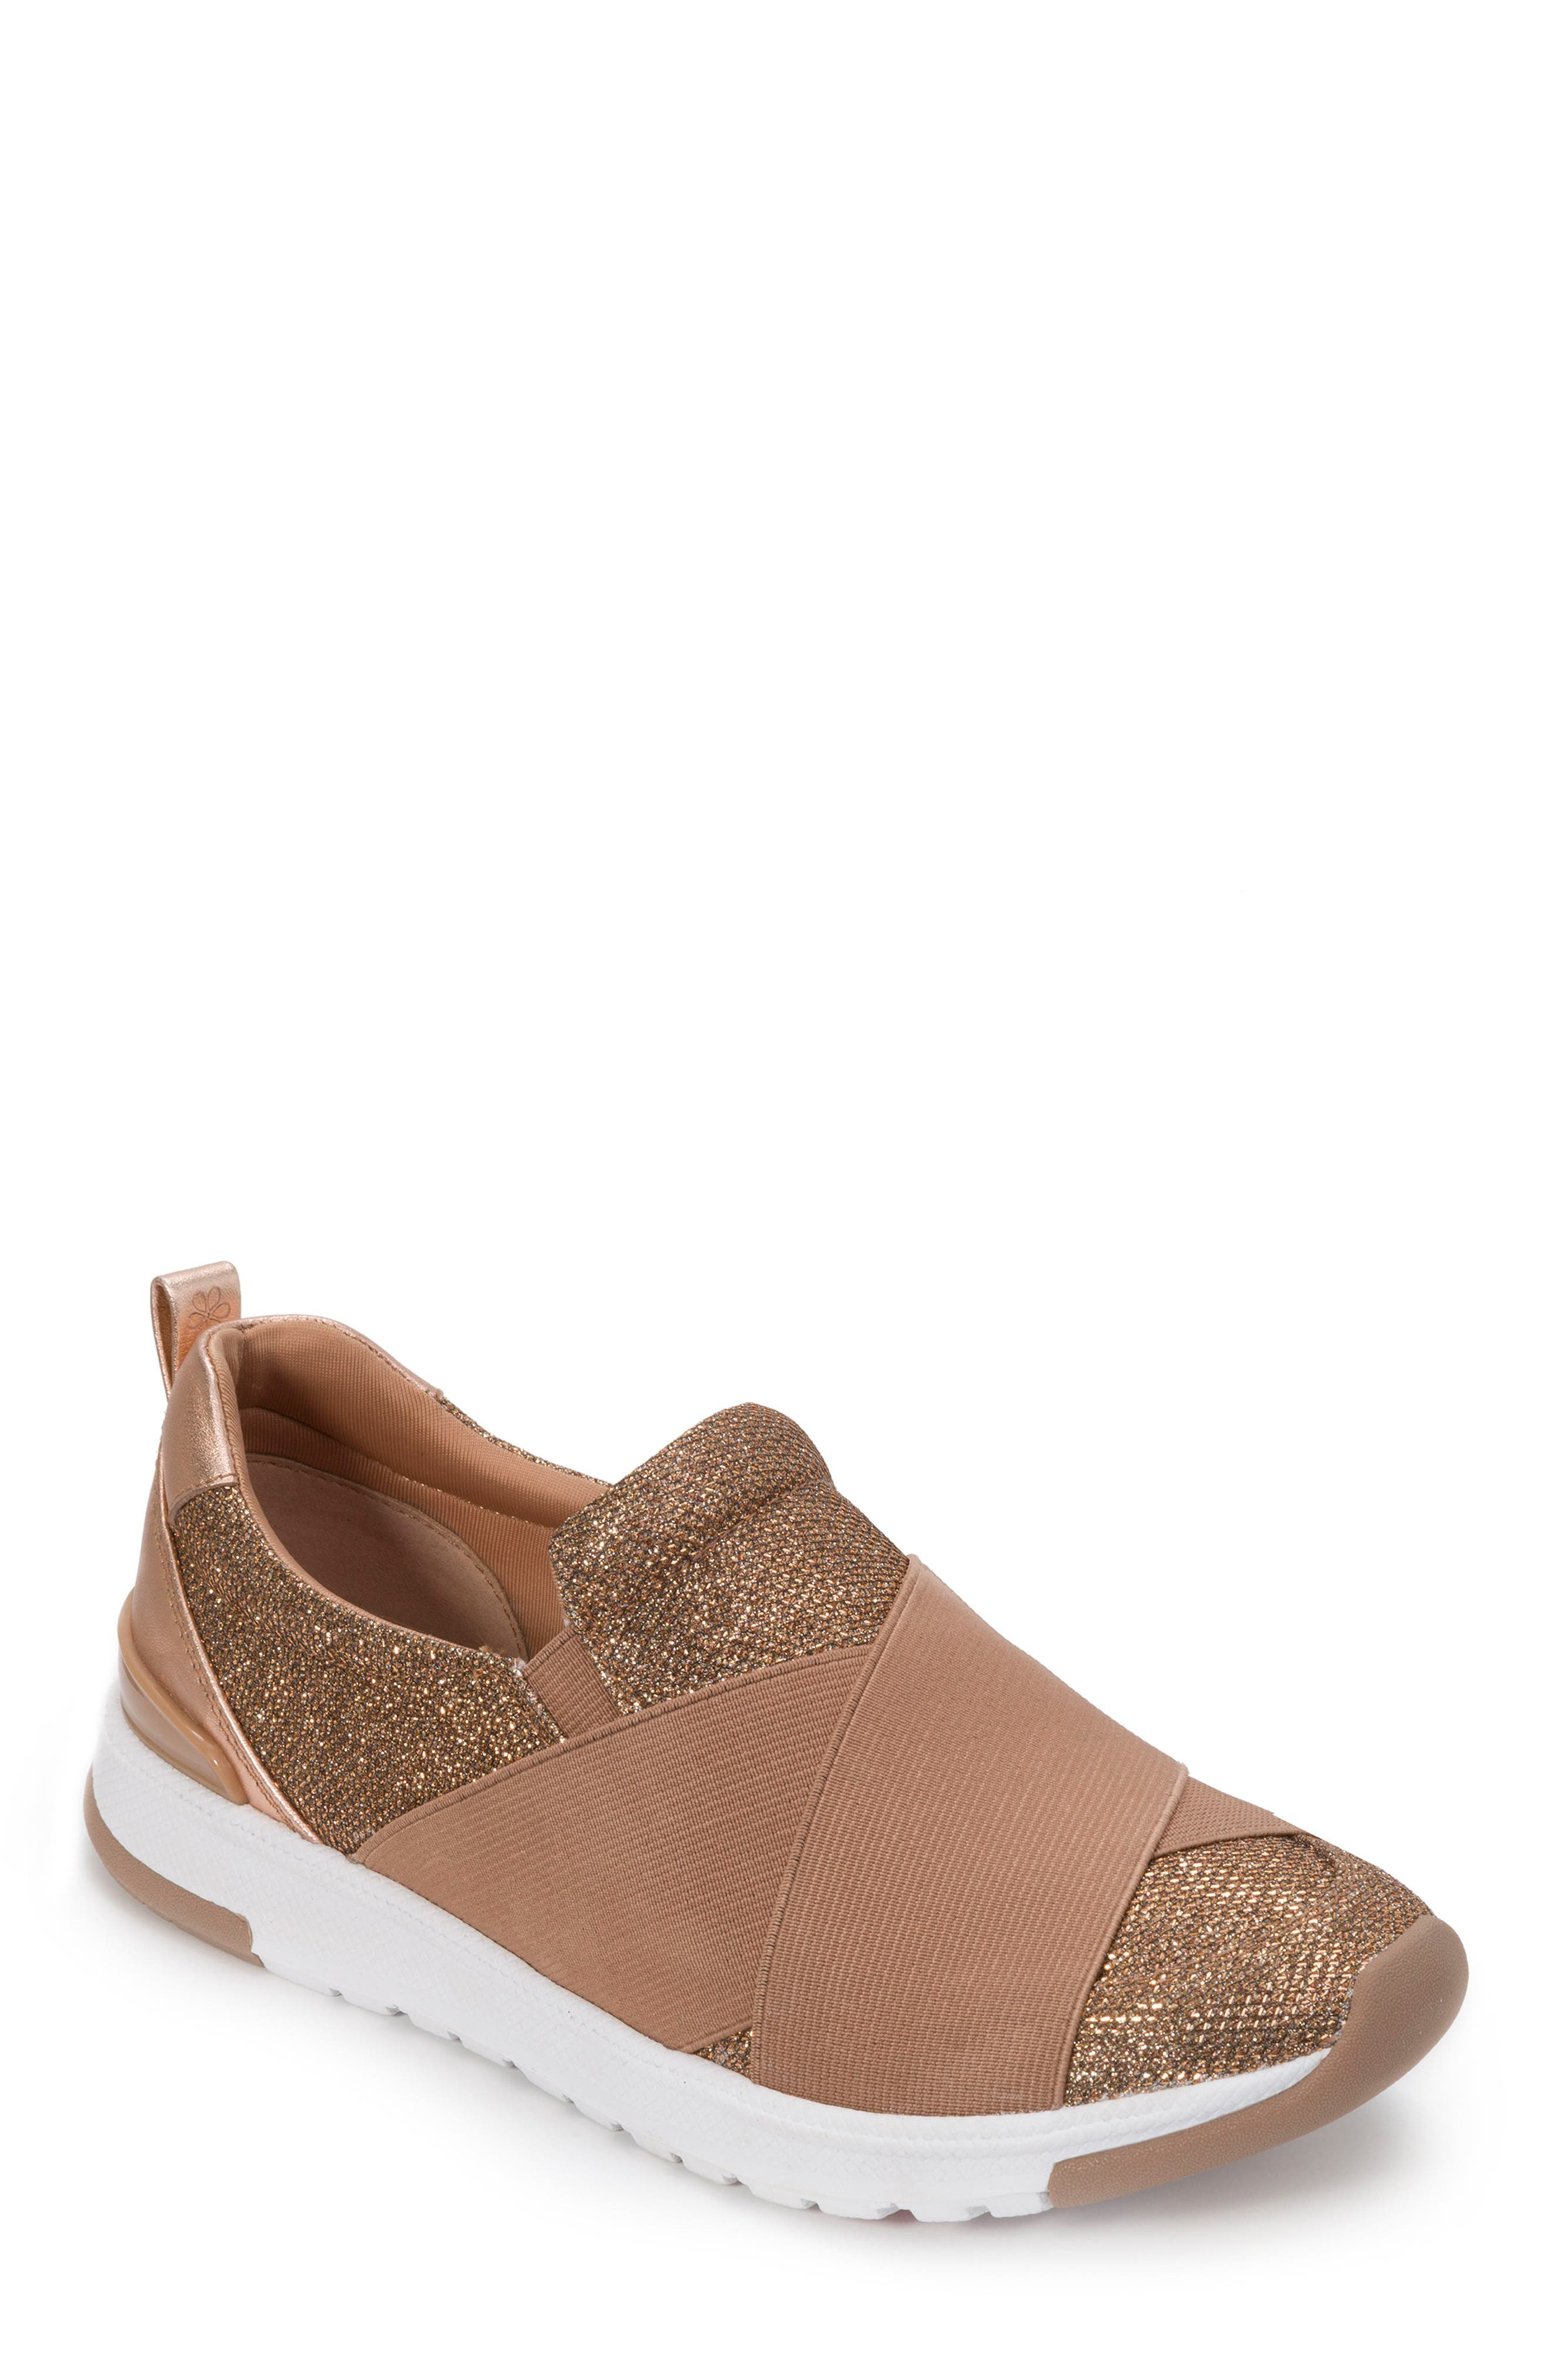 Slip-On Sneaker,                         Main,                         color, Rose Gold Leather